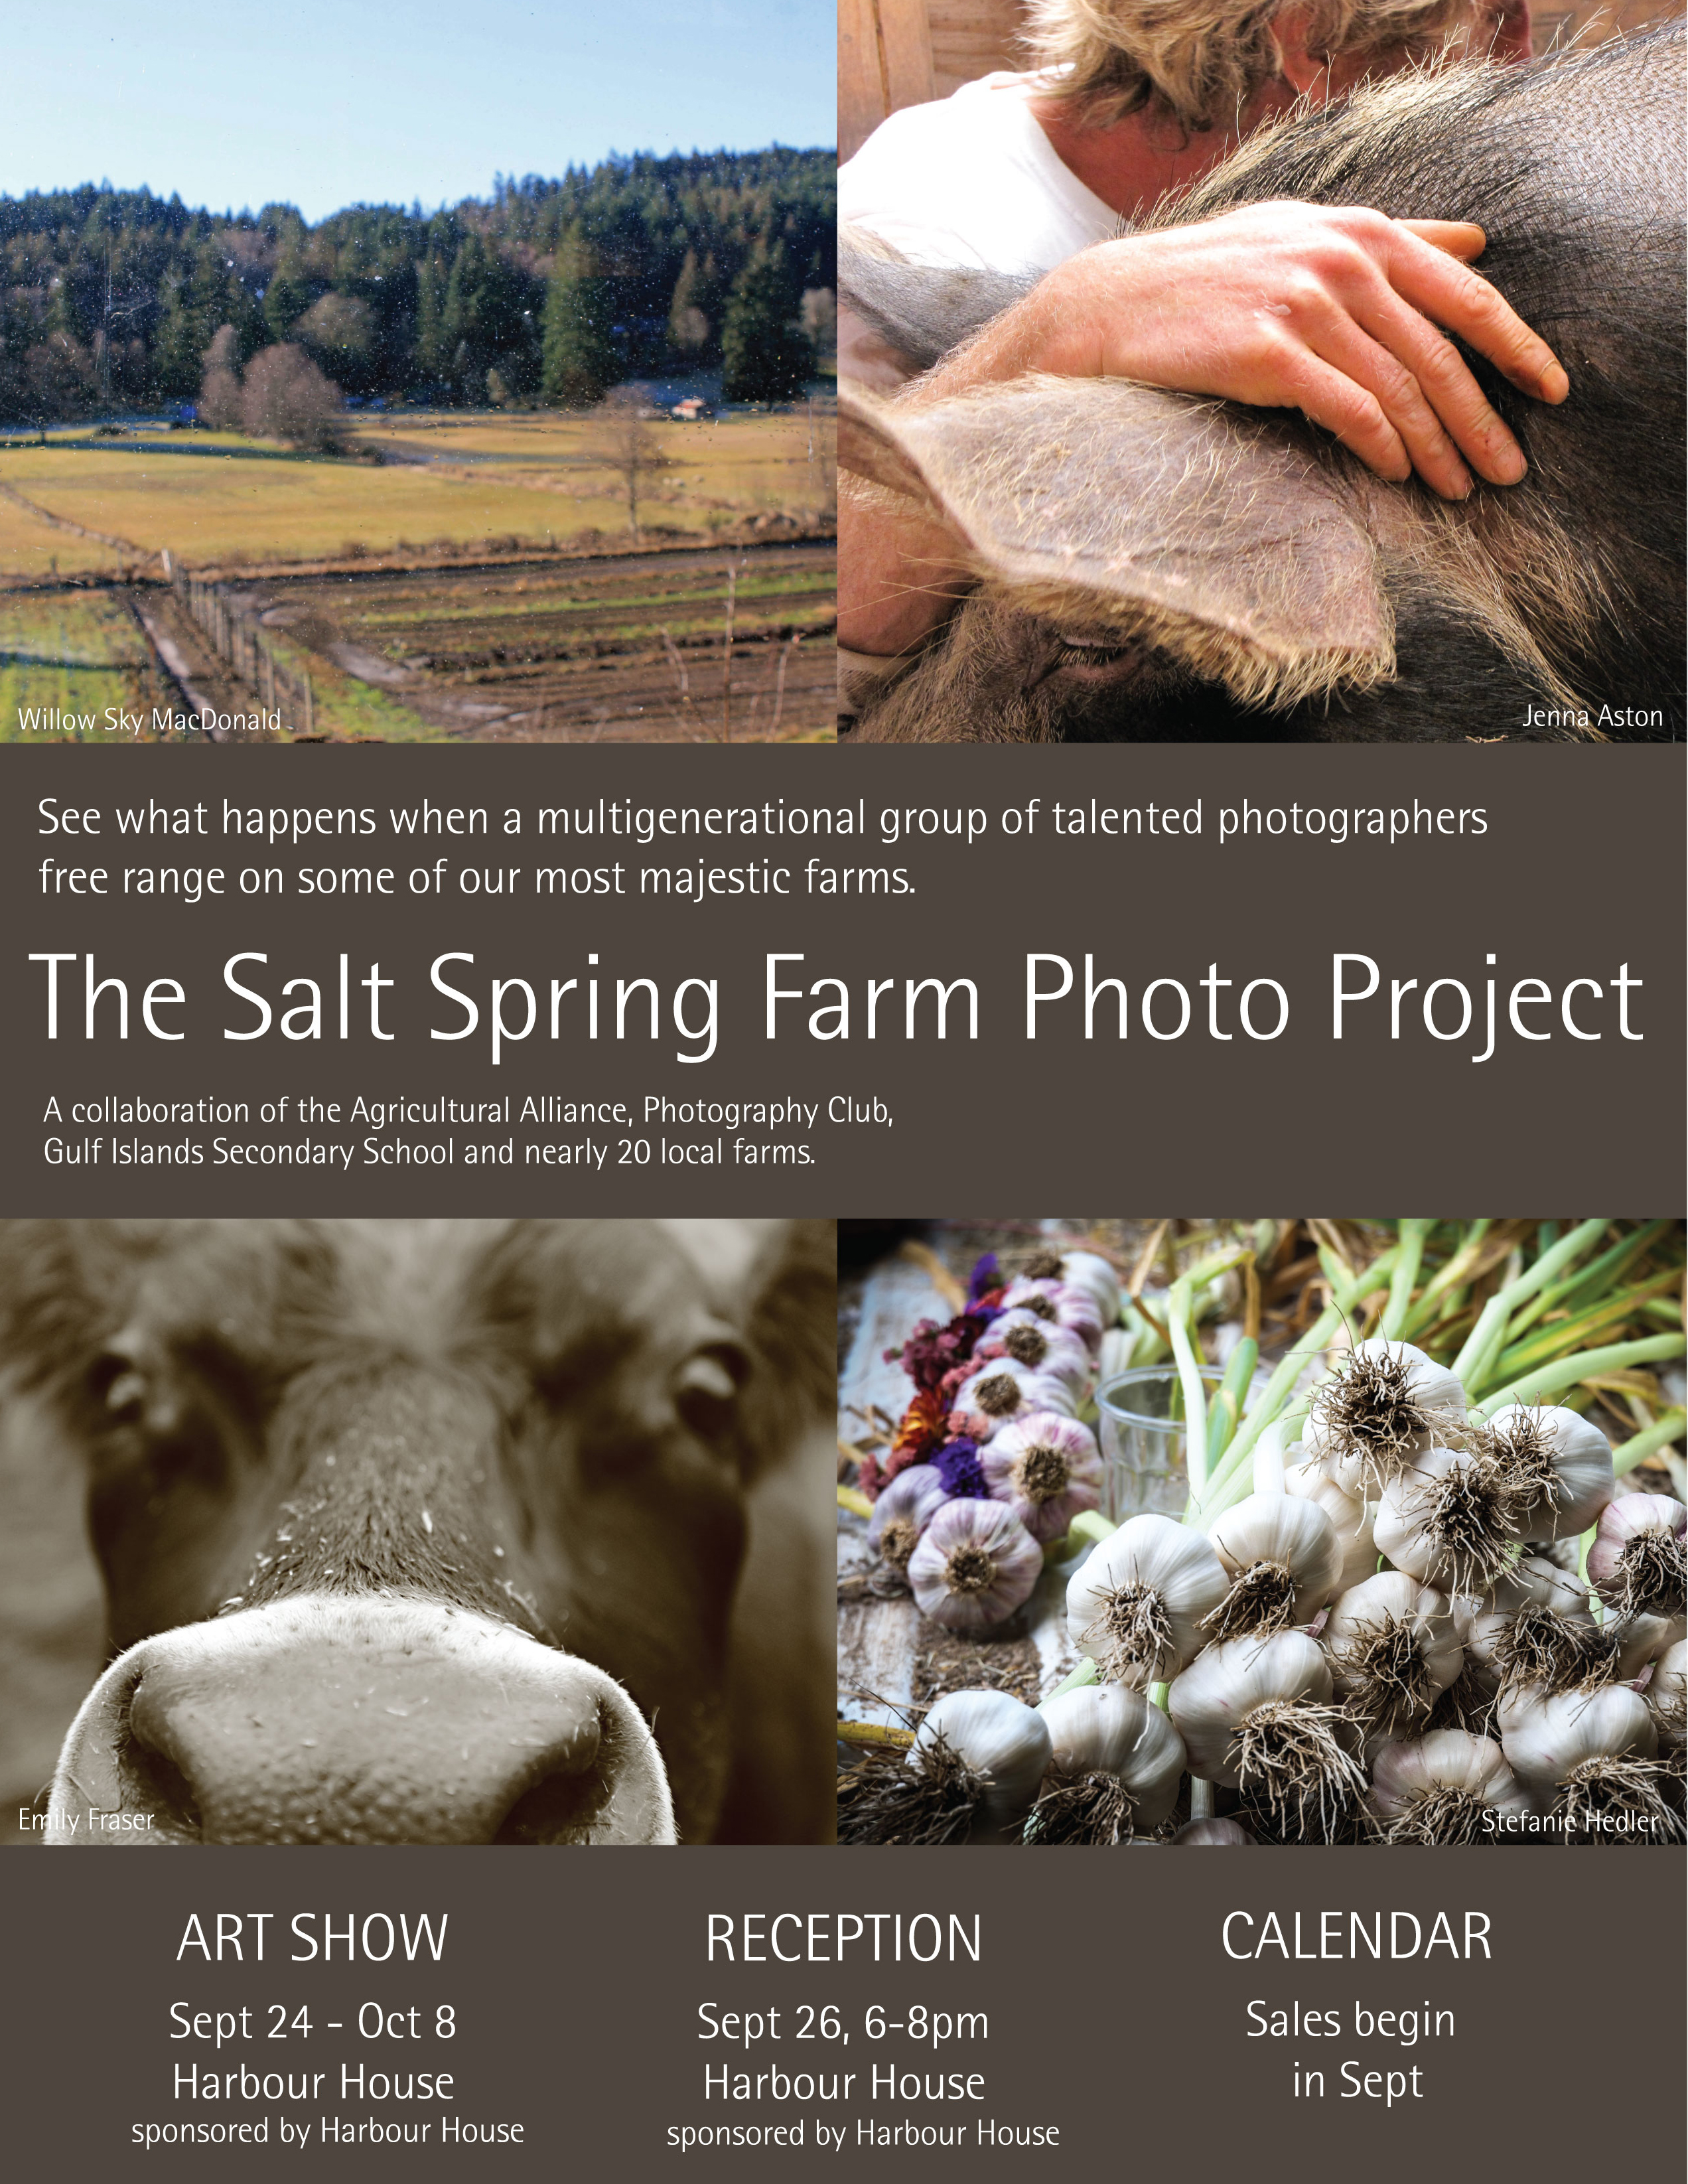 Farm Photo Project Show + Reception Announced!